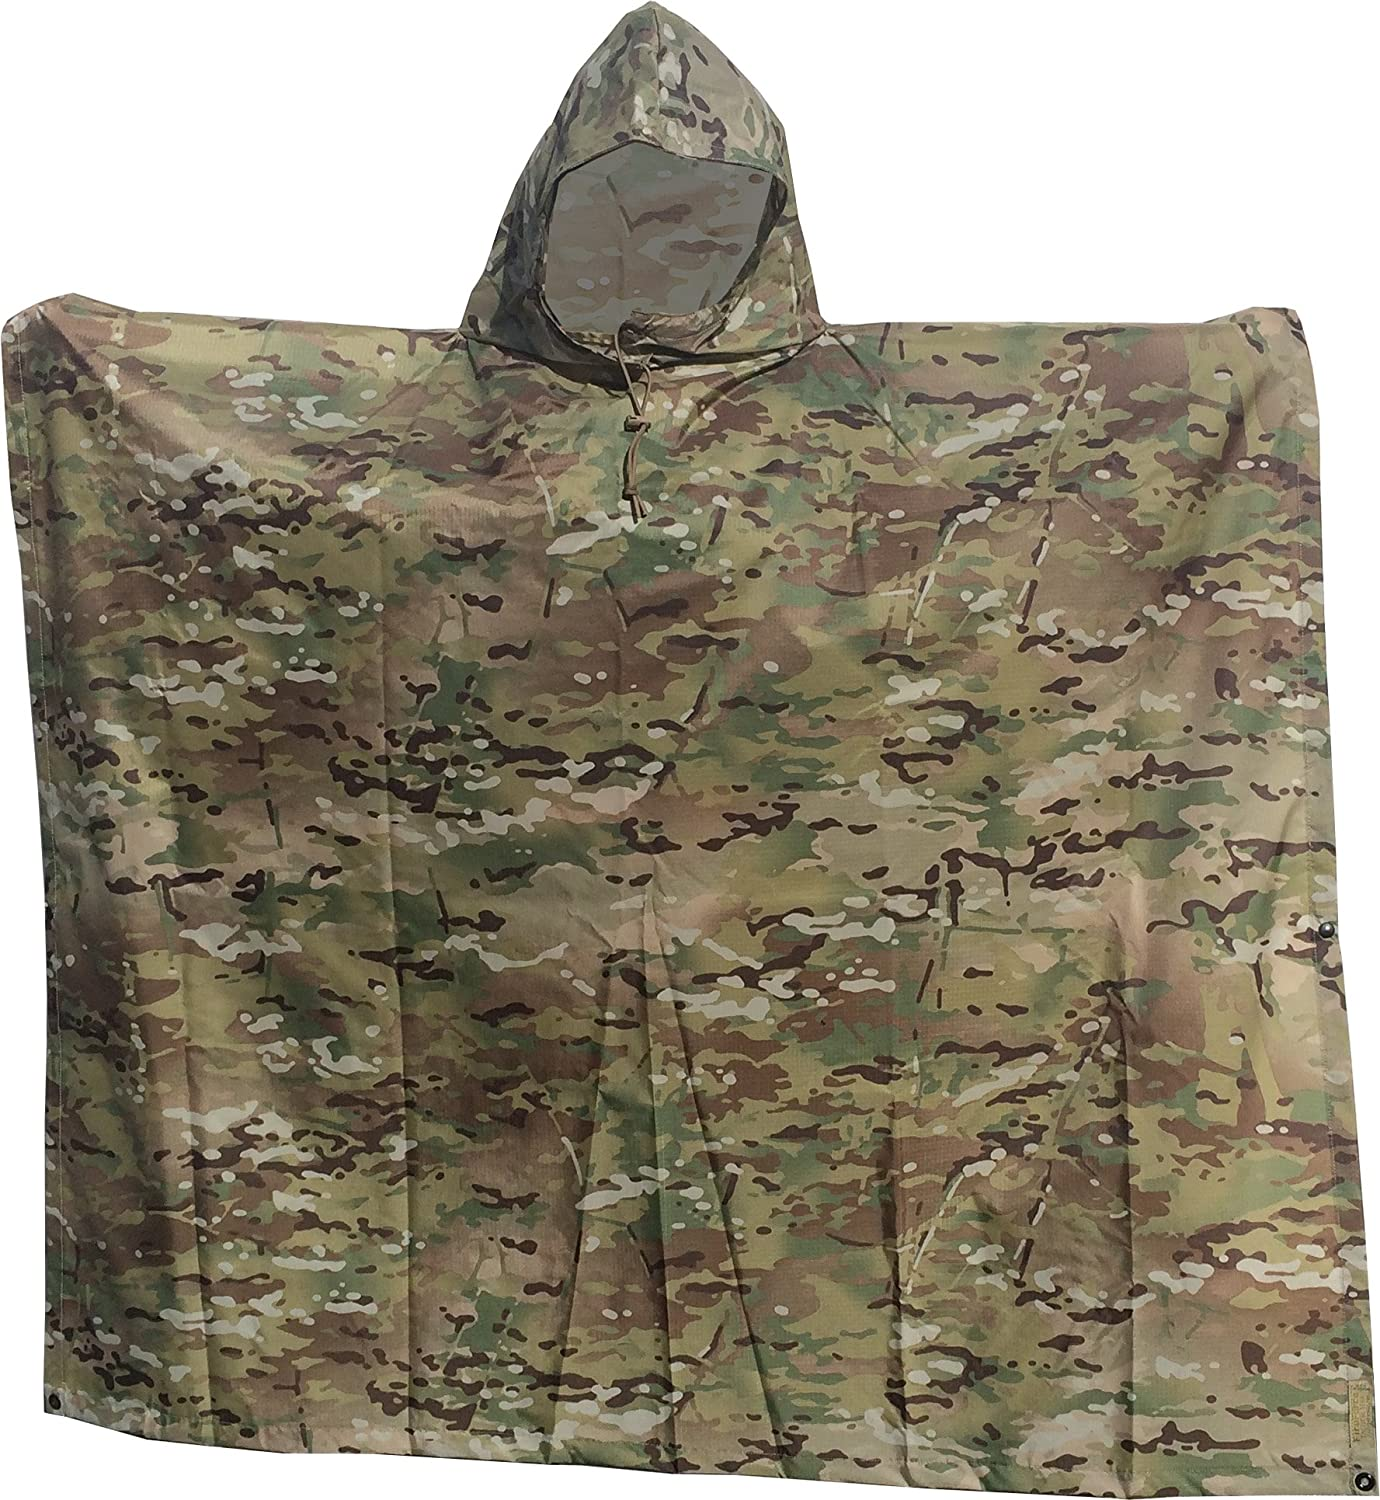 Fire Force Item #8518 Backpack Rain Cover Nylon Rip-Stop Made in USA